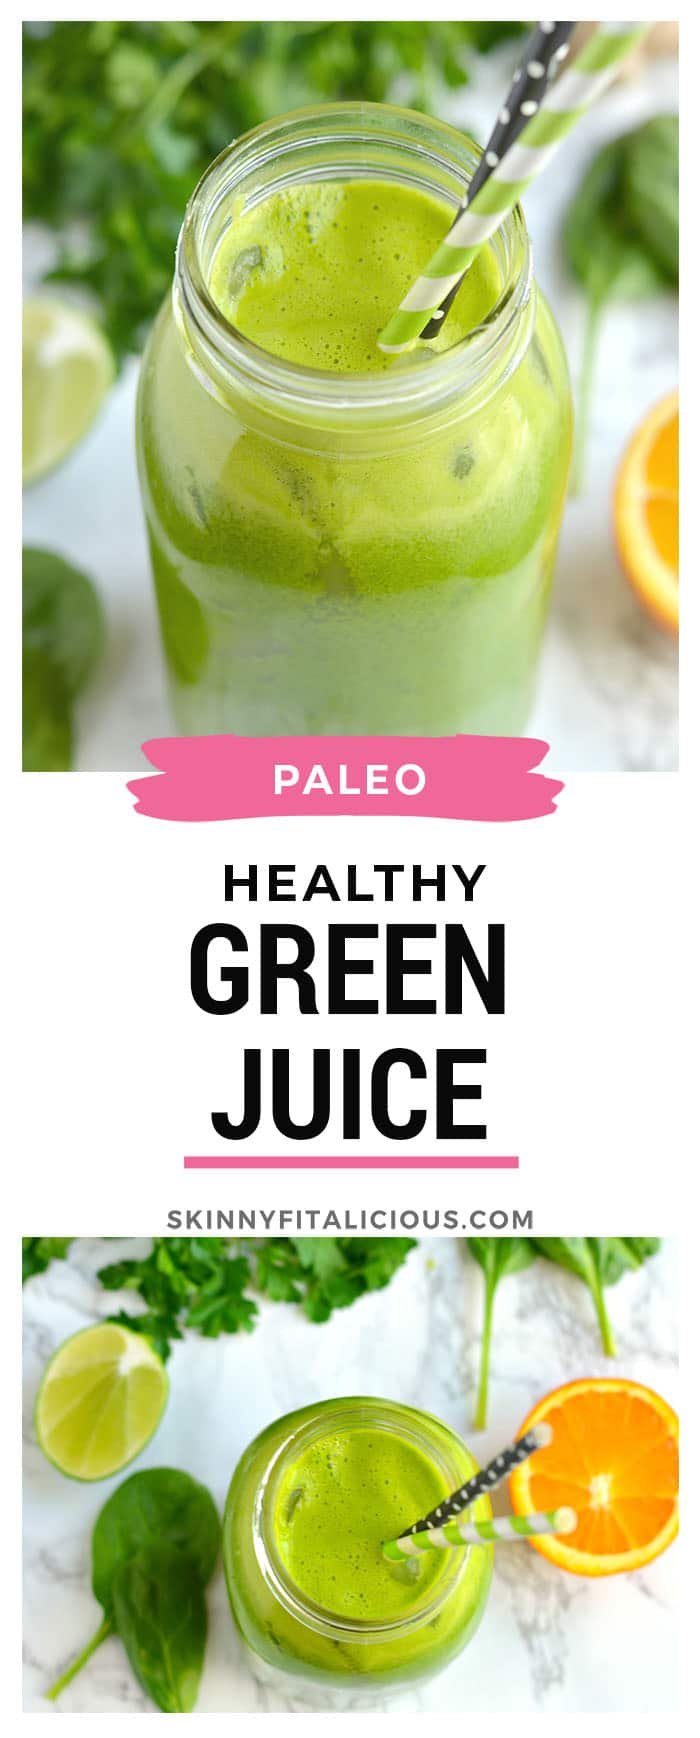 Jumpstart spring by spring cleaning your diet with a classic Green Juice. Made with spinach, parsley, ginger, apple, oranges and lime, this addicting Green Juice is loaded with nutrients and layered with flavors of citrus and spice with an ounce of tang! Gluten Free + Paleo + Vegan + Low Calorie